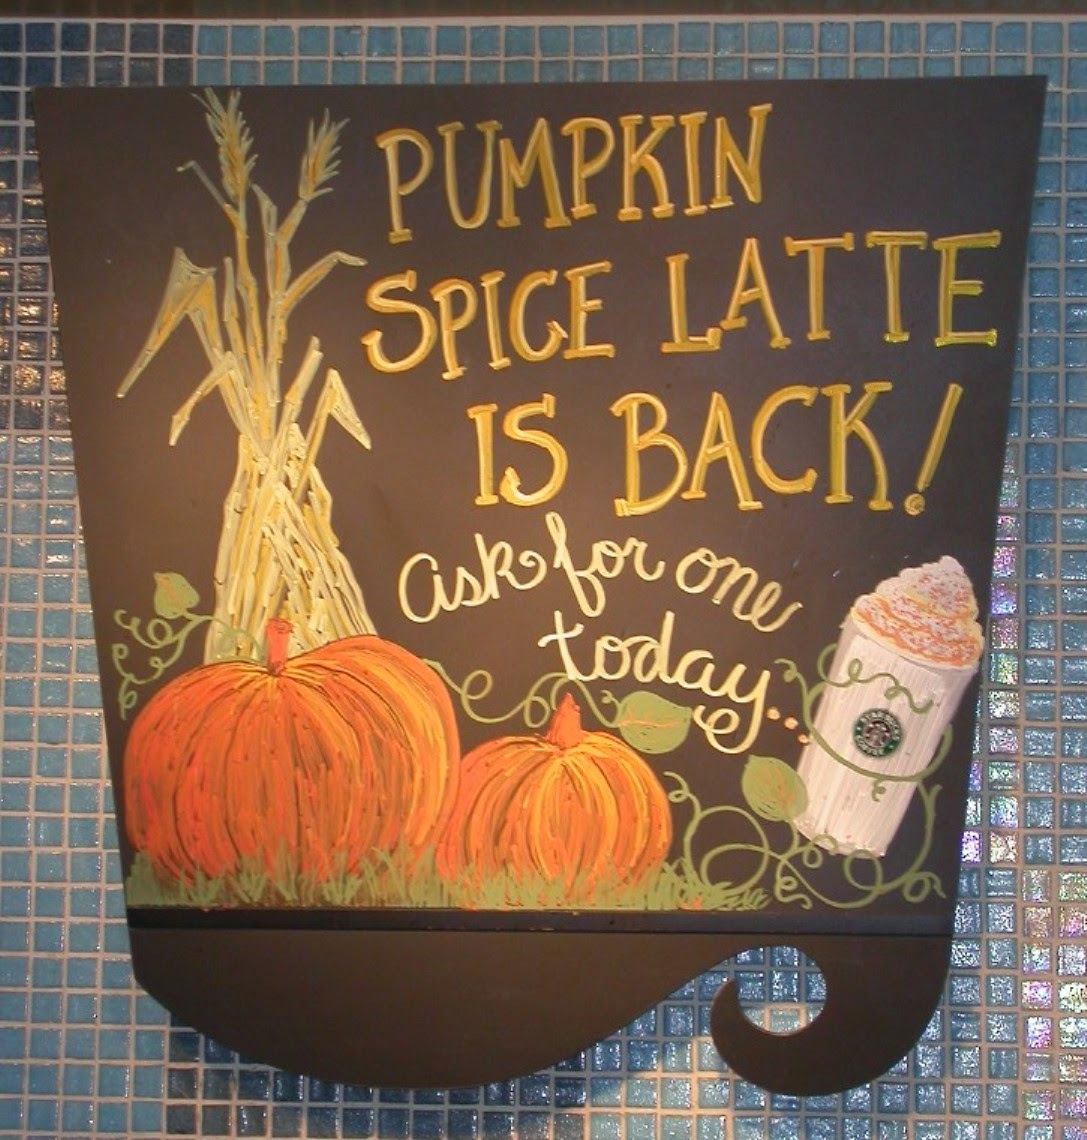 pumpkin-spice-latte-sign-785463.jpg